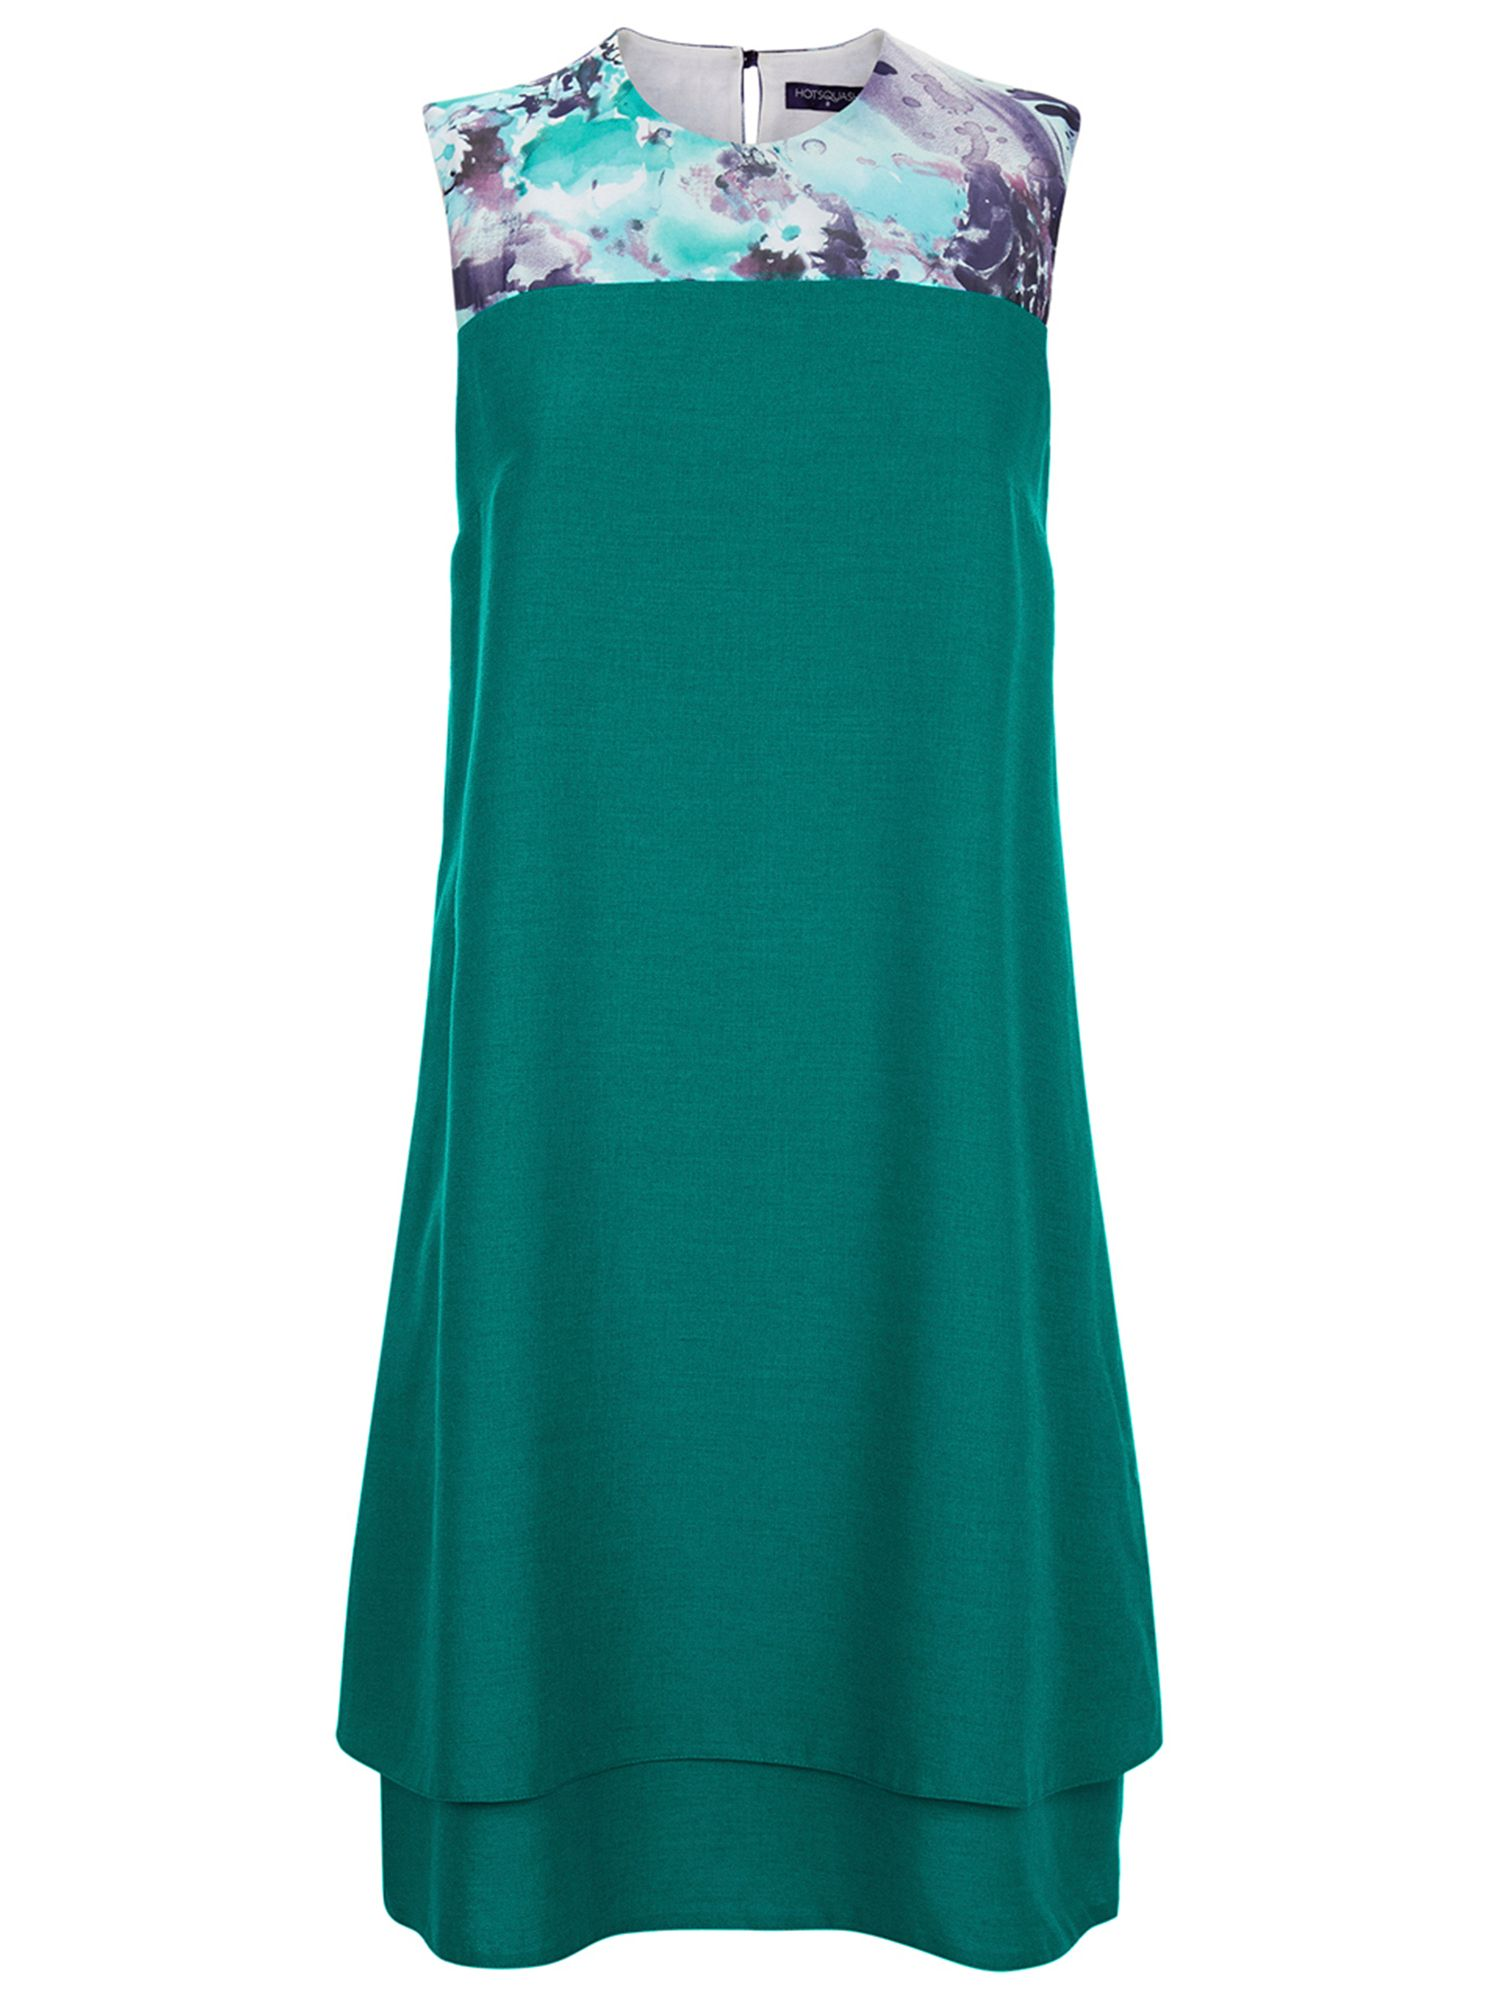 HotSquash Double Layered Dress in CoolFresh, Turquoise